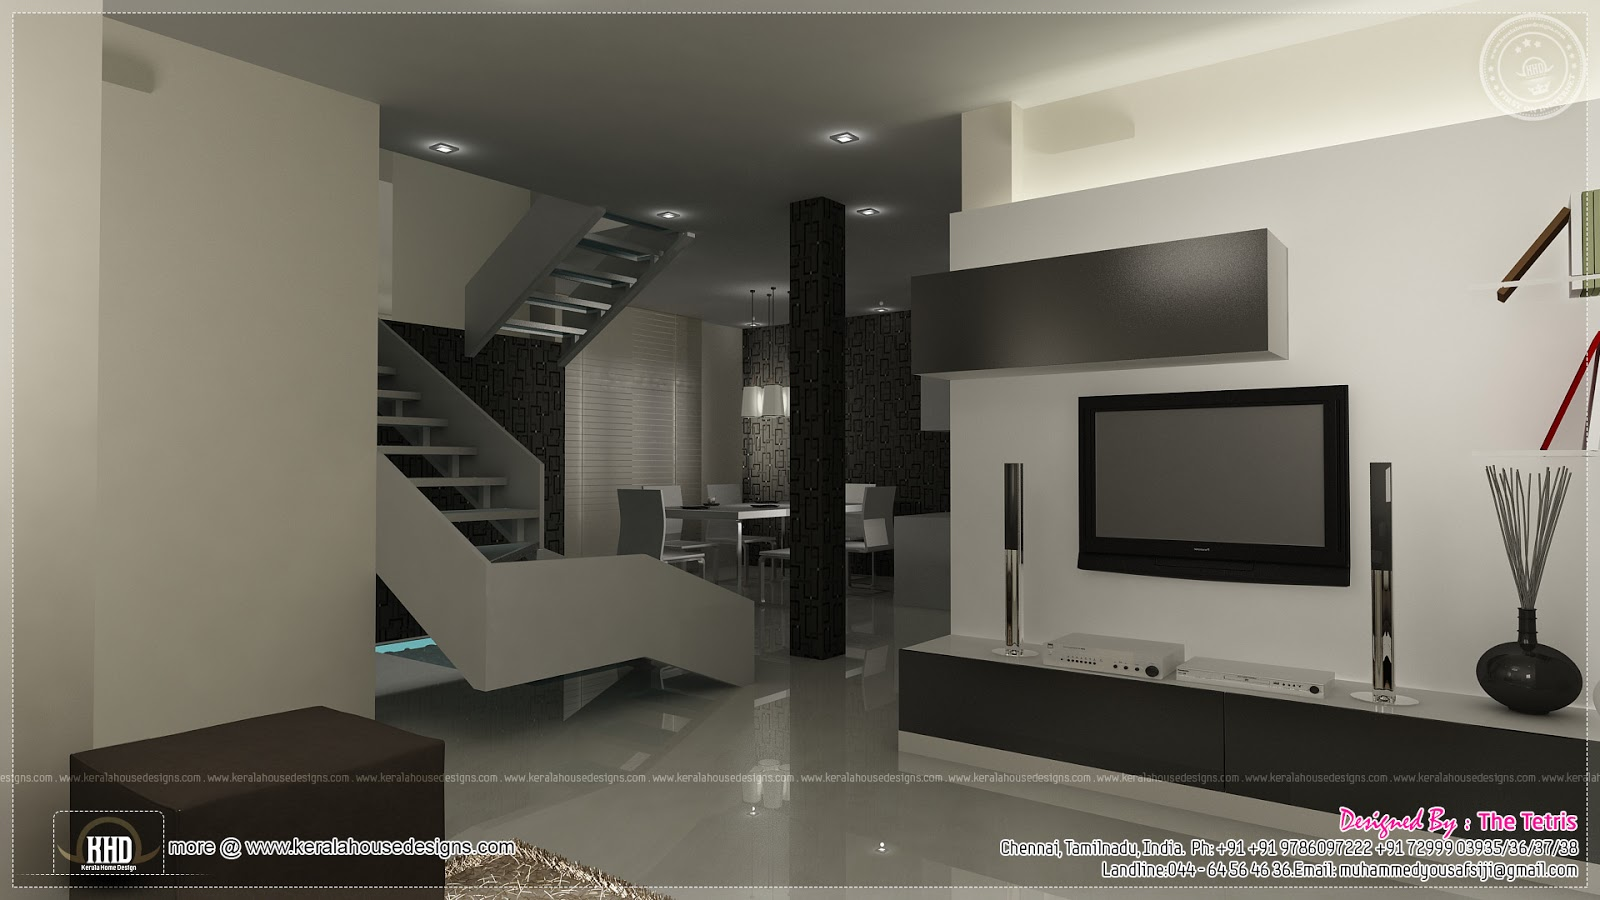 Interior design renderings by tetris architects chennai for Interior desinging